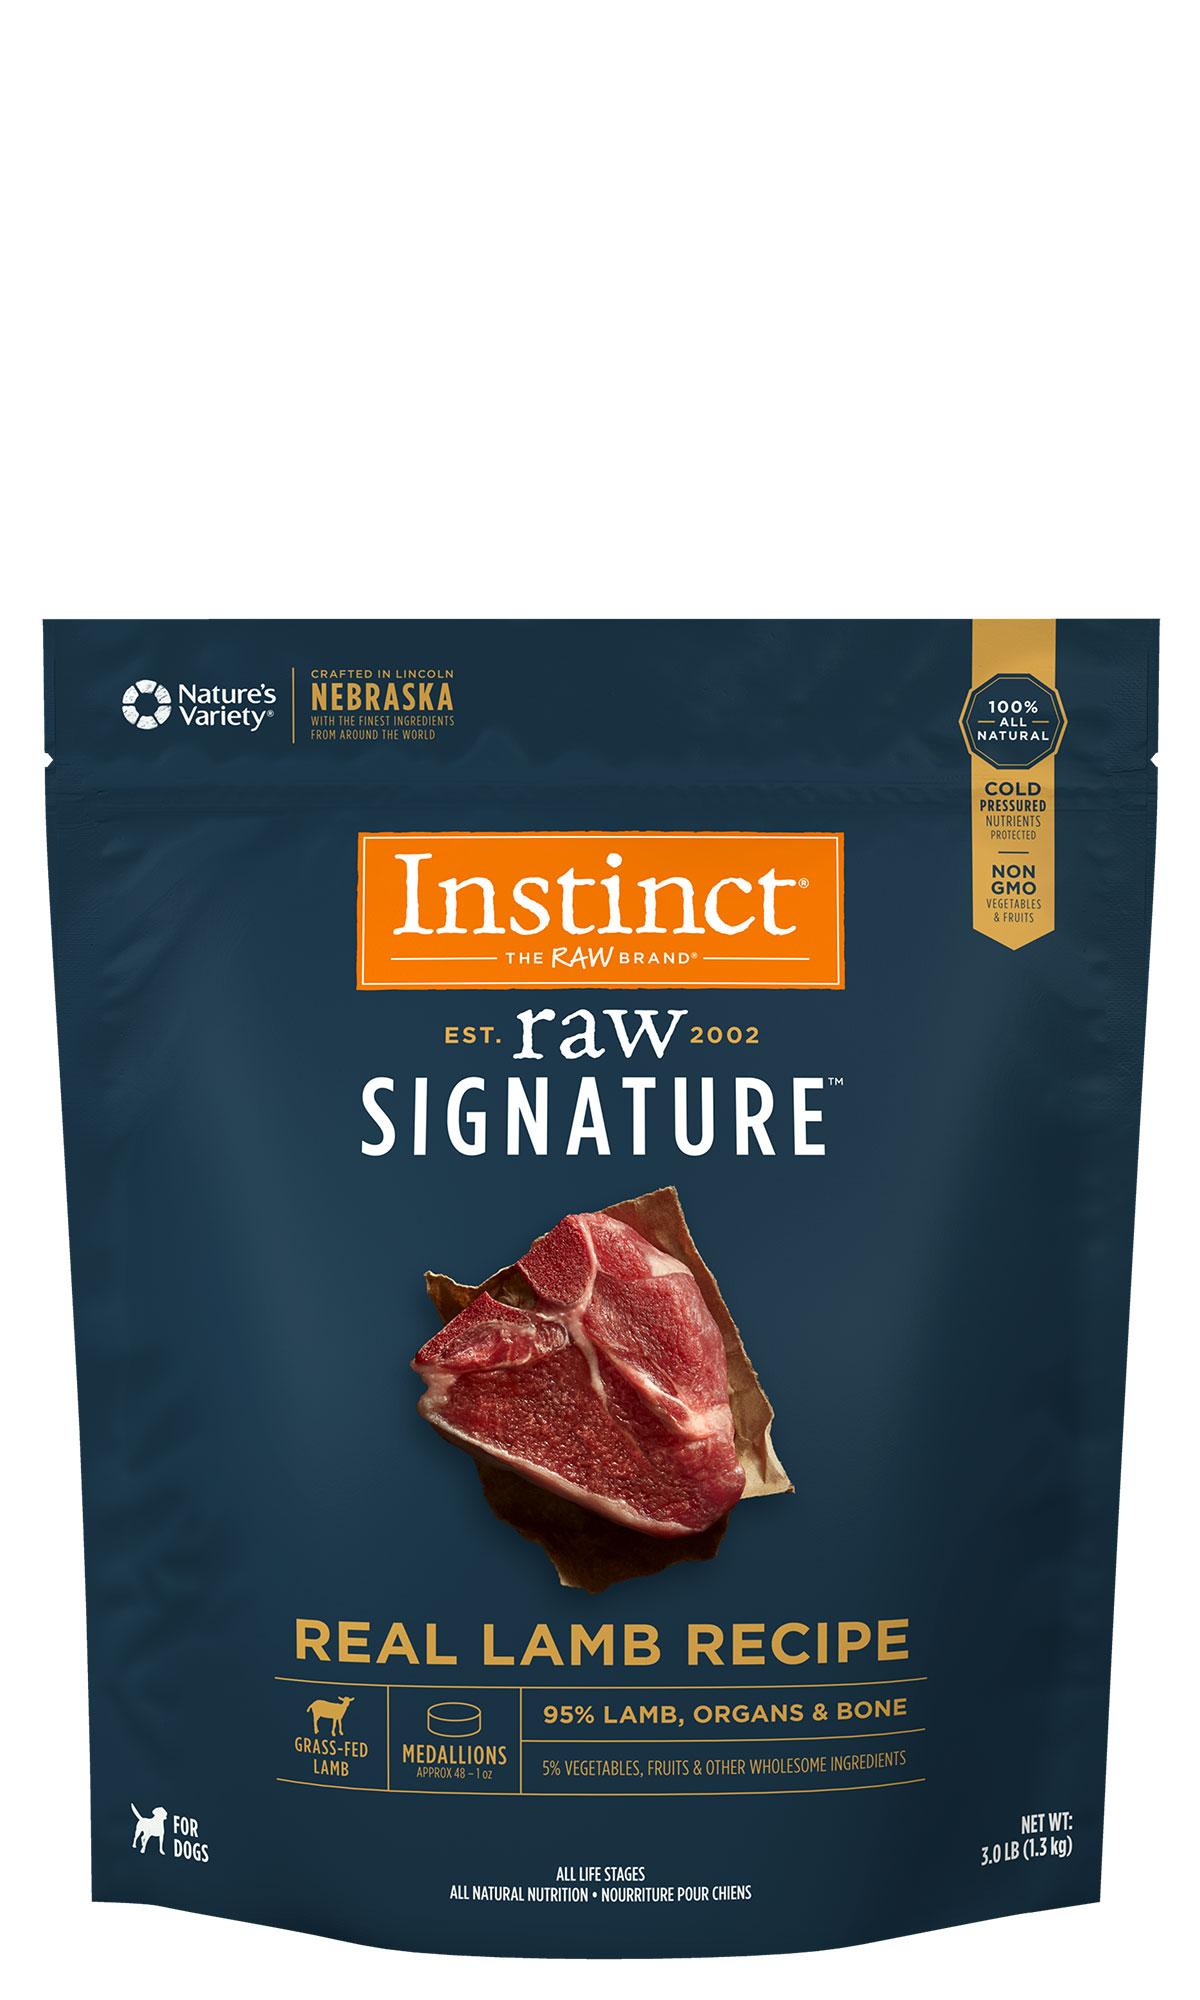 Instinct by Nature's Variety Raw Signature Real Lamb Recipe Frozen Medallions Dog Food, 3-lb (Size: 3-lb) Image